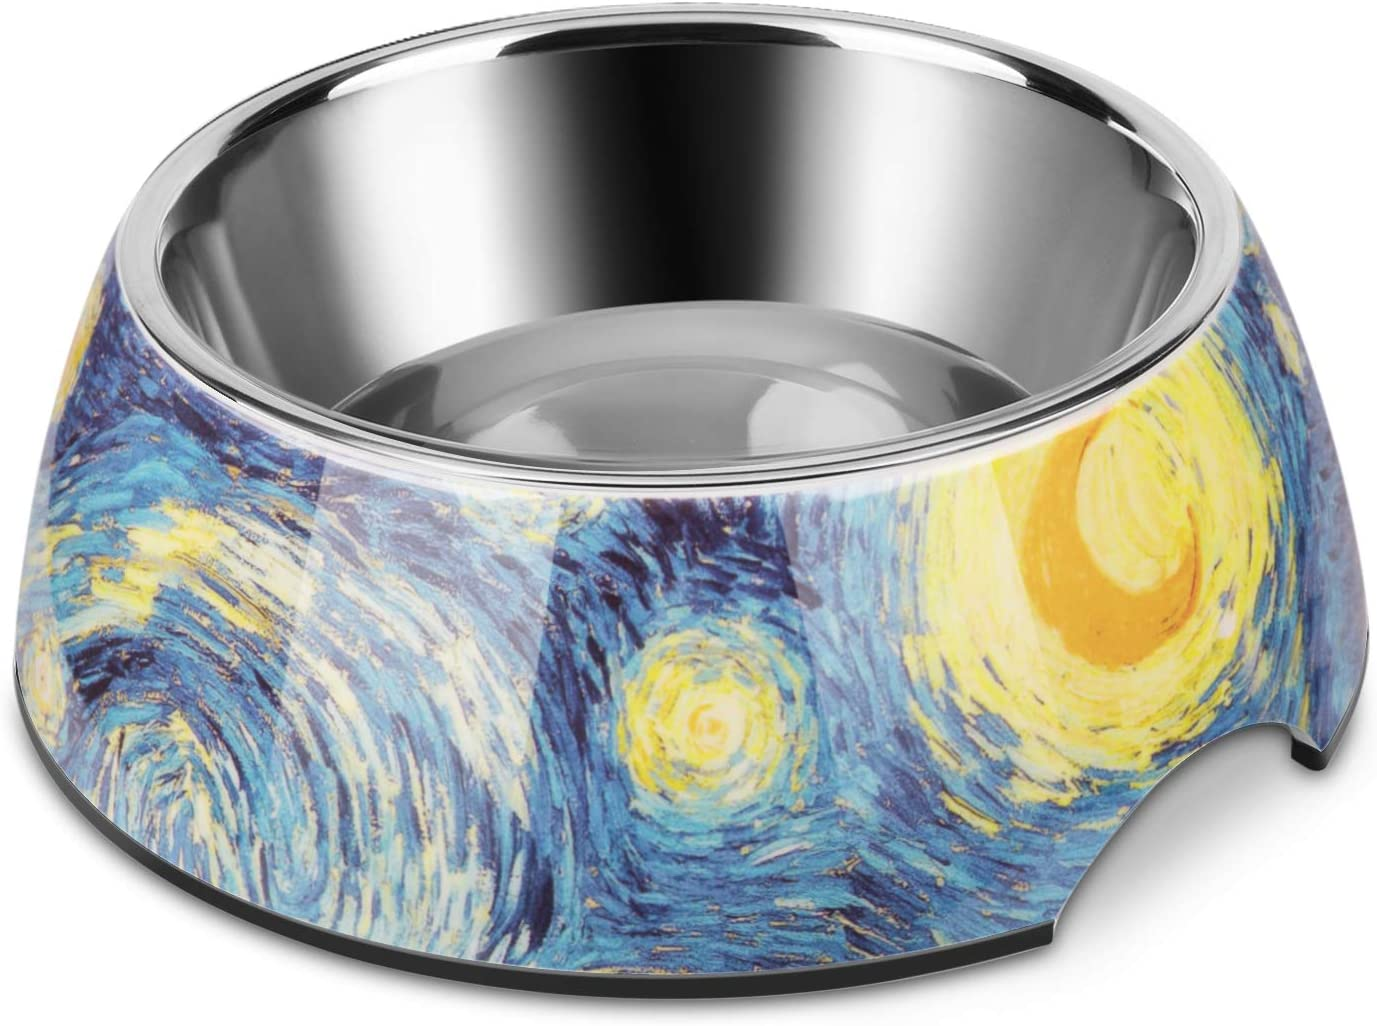 Flexzion Stainless Steel Dog Bowl Cat Dish - Anti-Slip Slip Resistant Rubber Base Pet Feeder, Dishwasher Safe & Rust Resistant with Removable Food Water Holder 24 Fl Oz